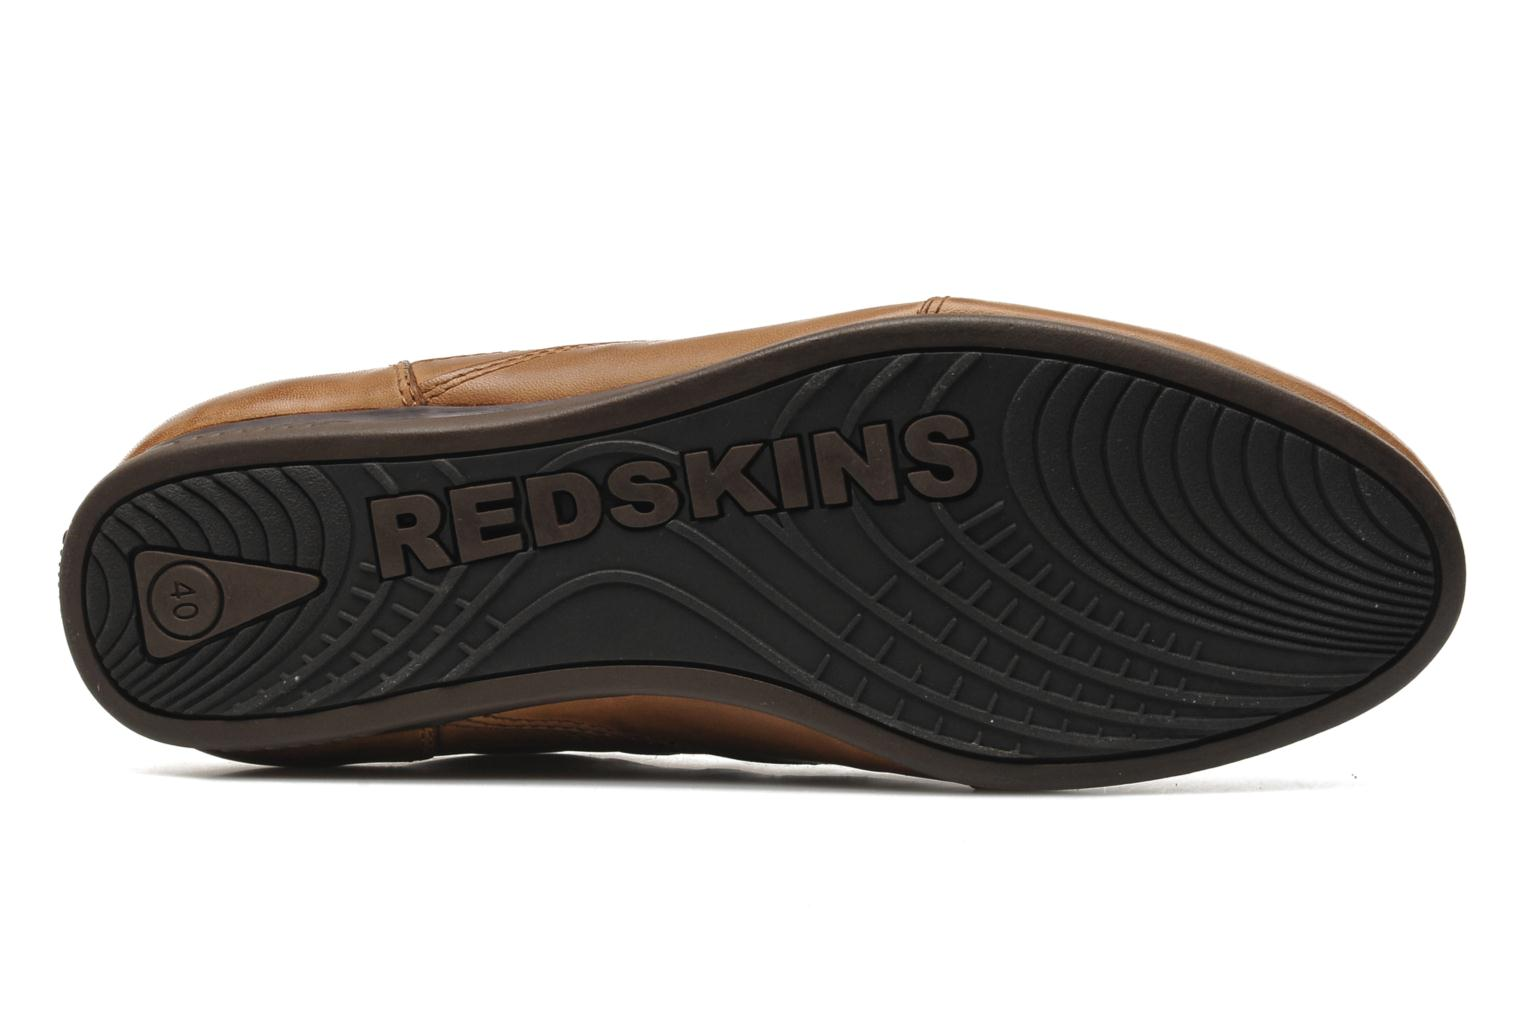 Baskets Redskins Chicosan Marron vue haut